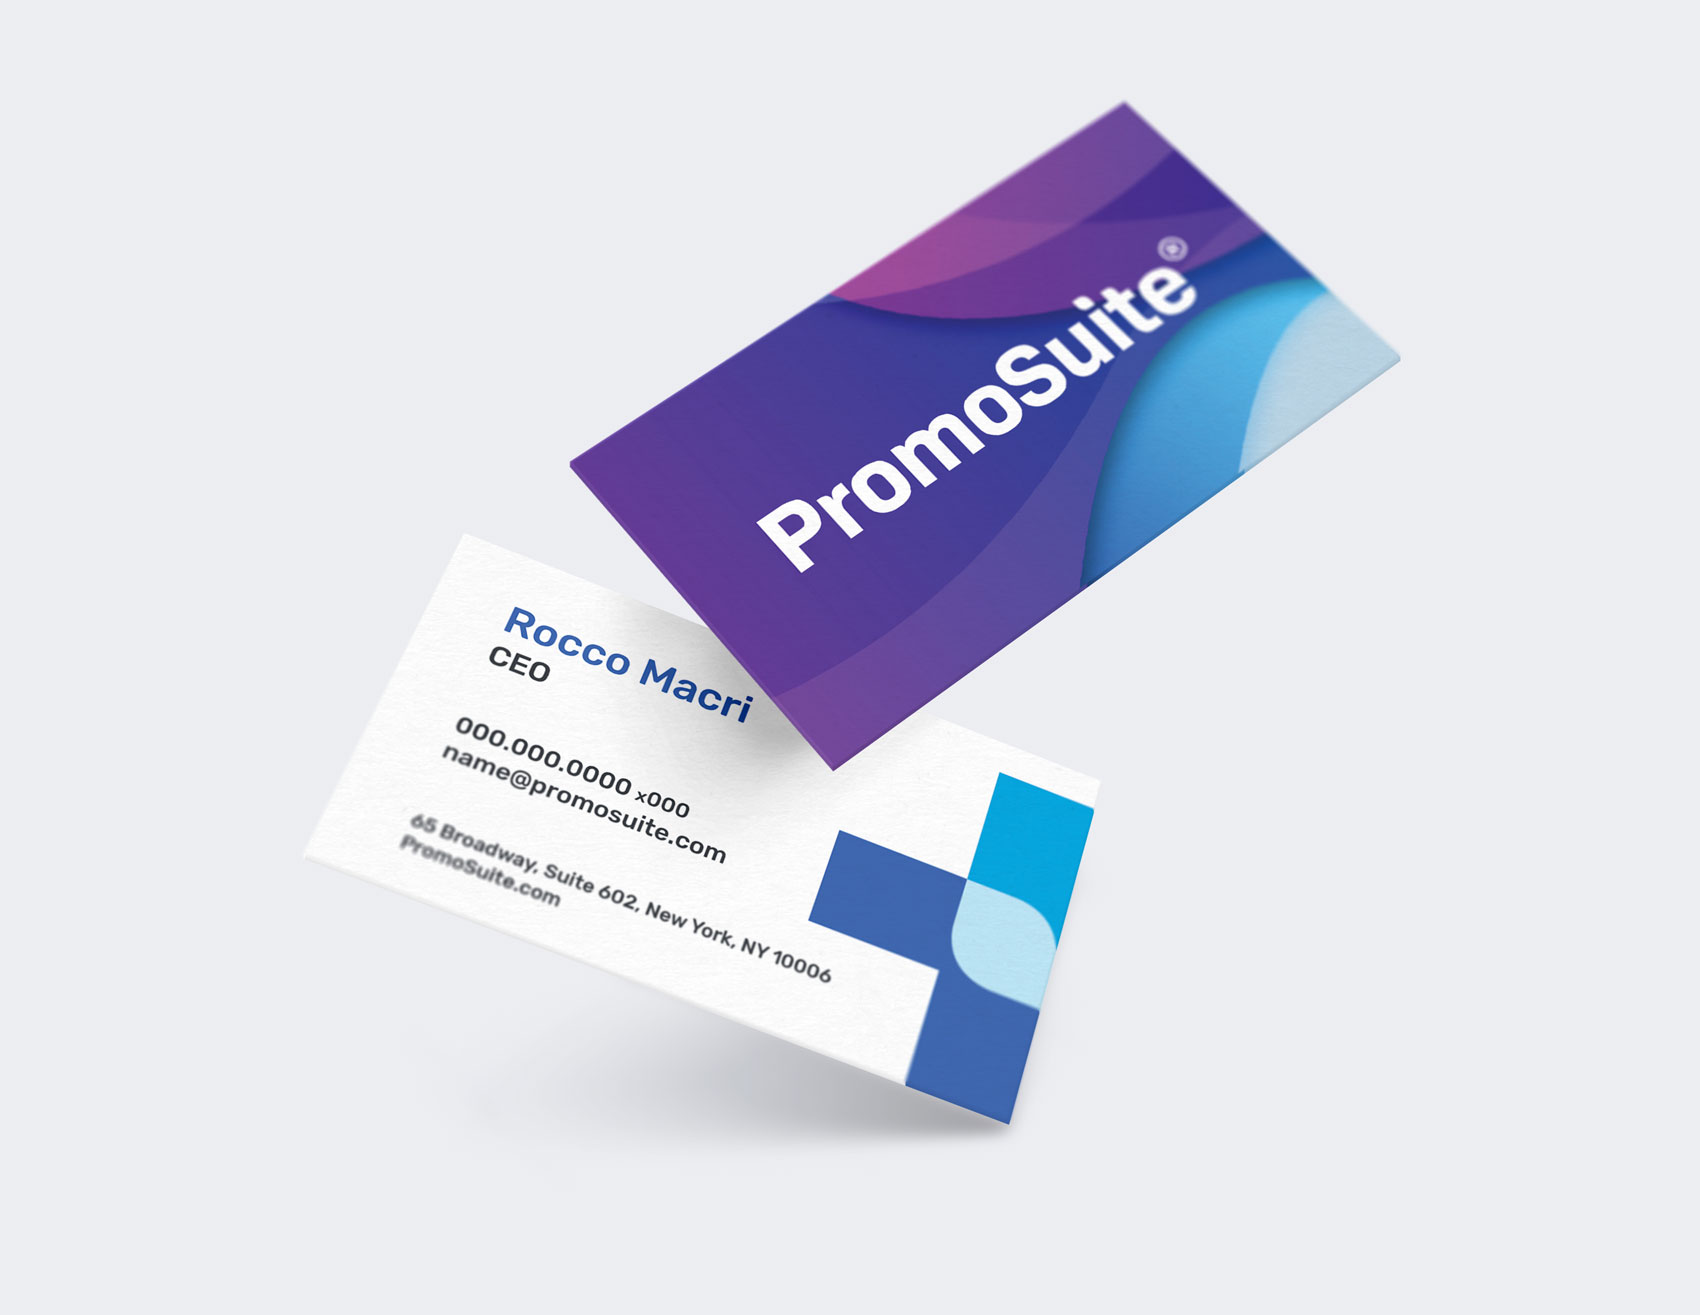 Promosuite Business Cards